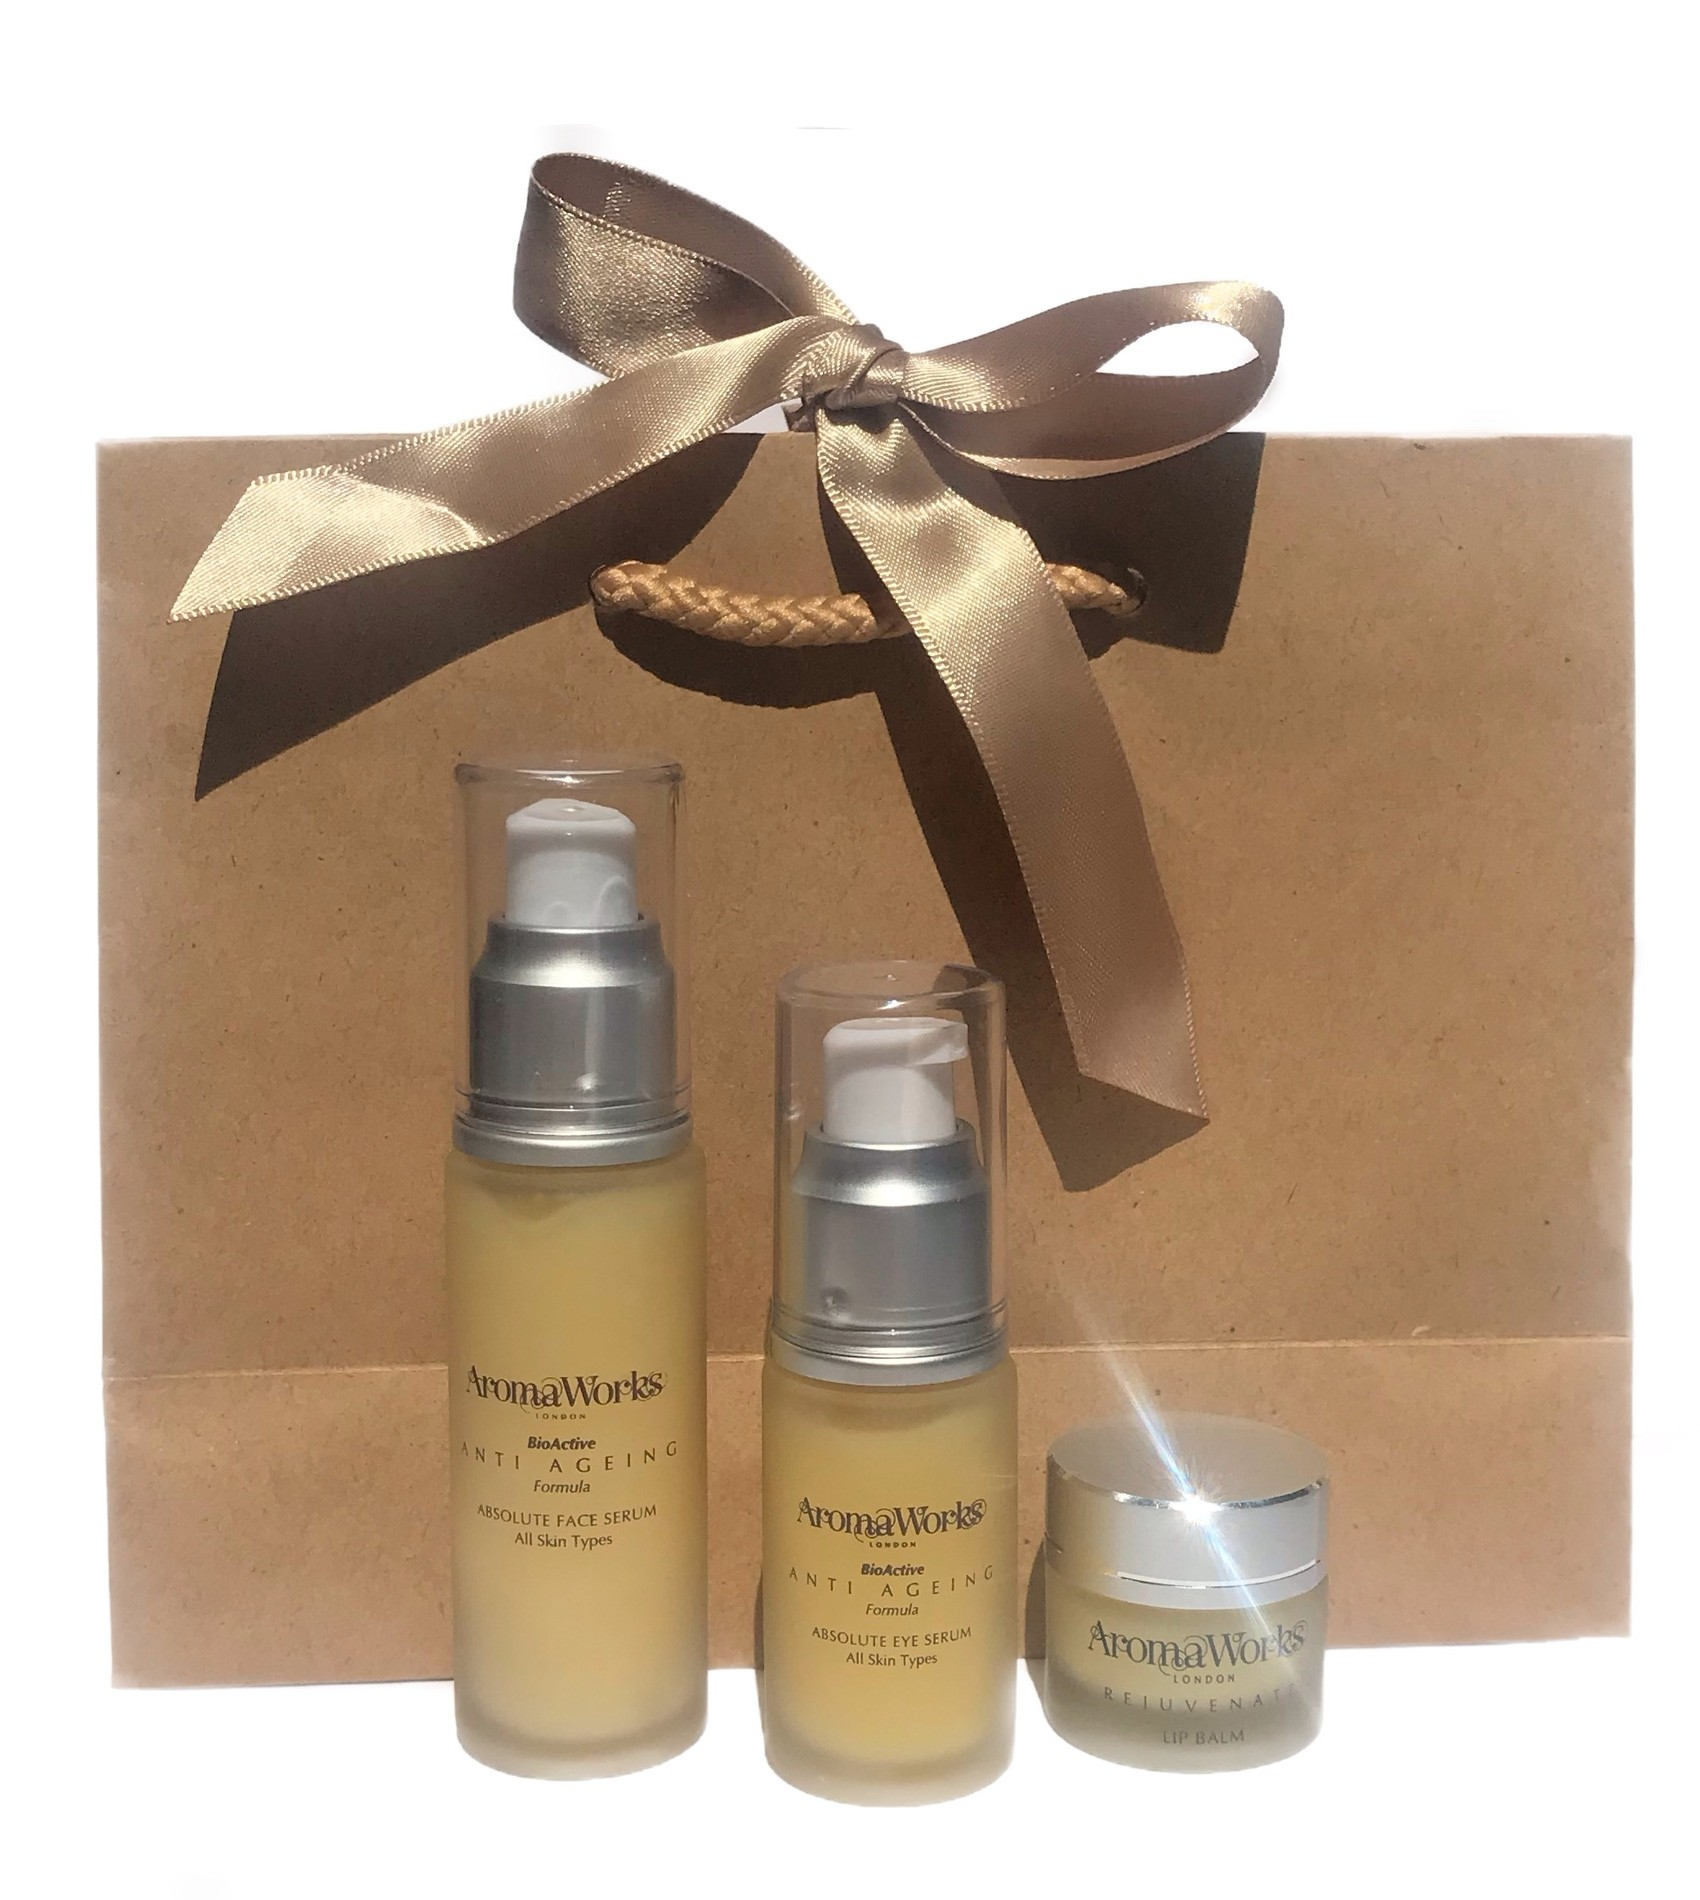 AromaWorks Nourish Skin Care Gift Set